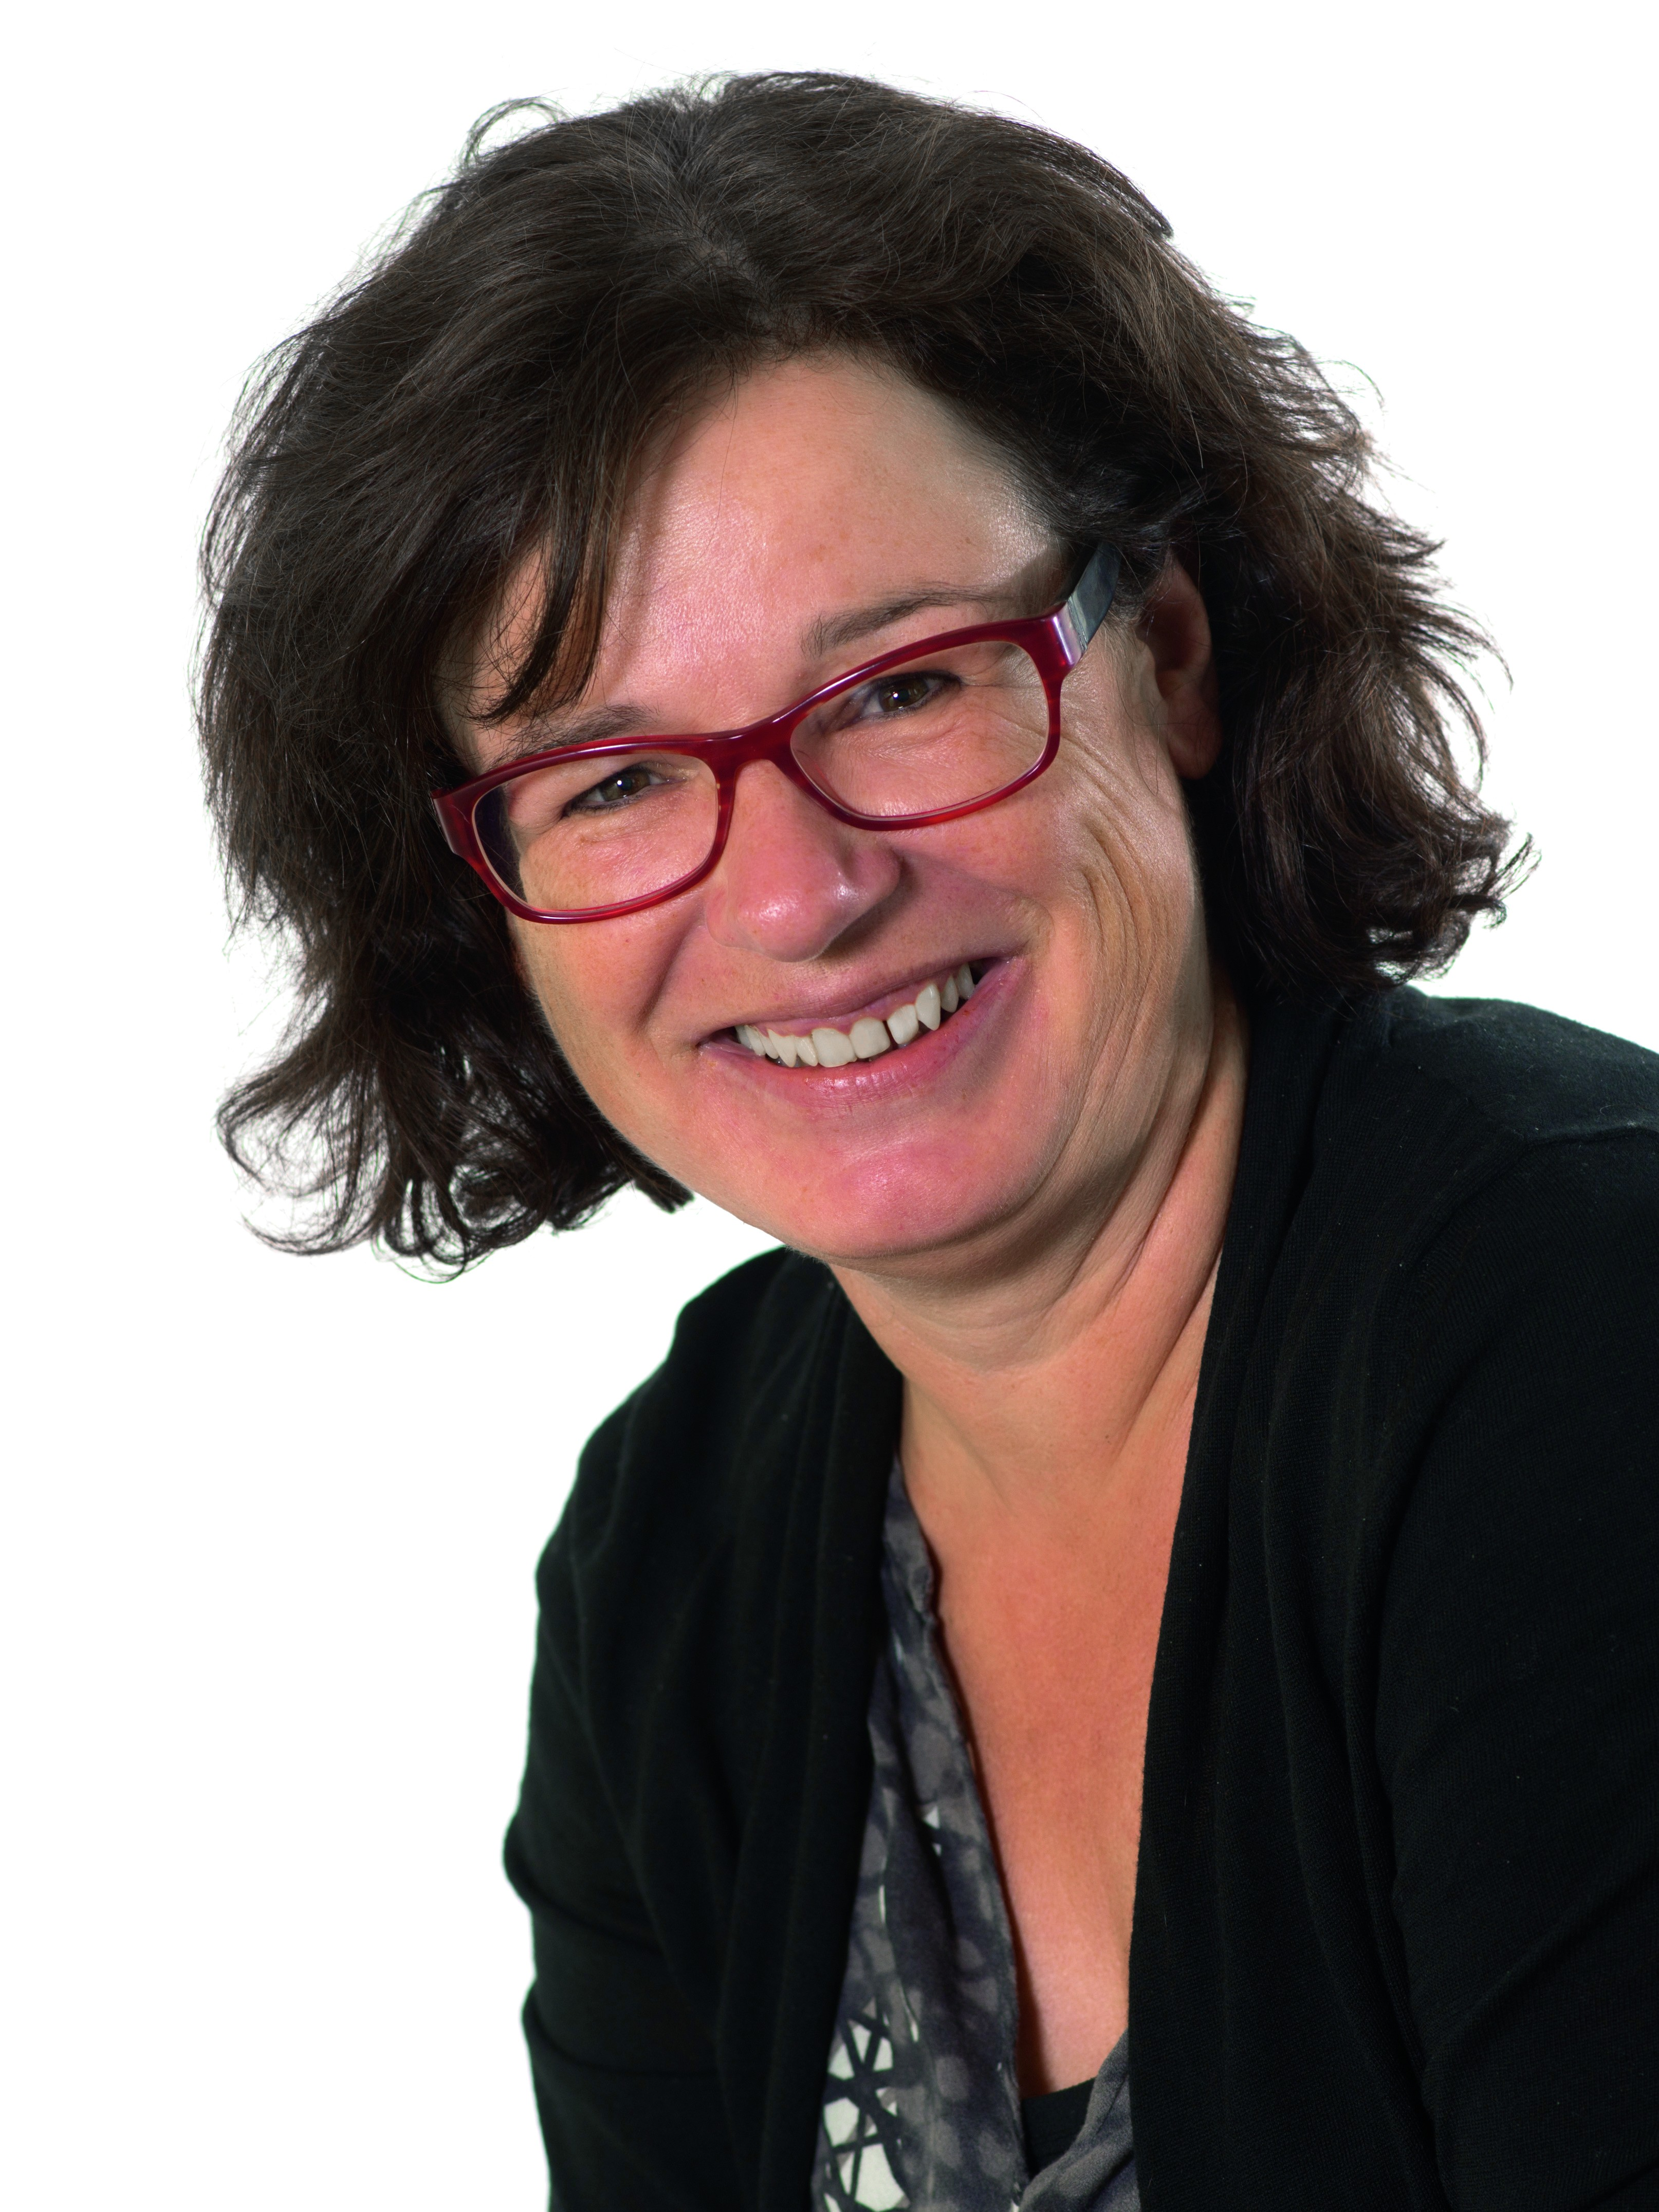 Managing Director Sibylle Thierer